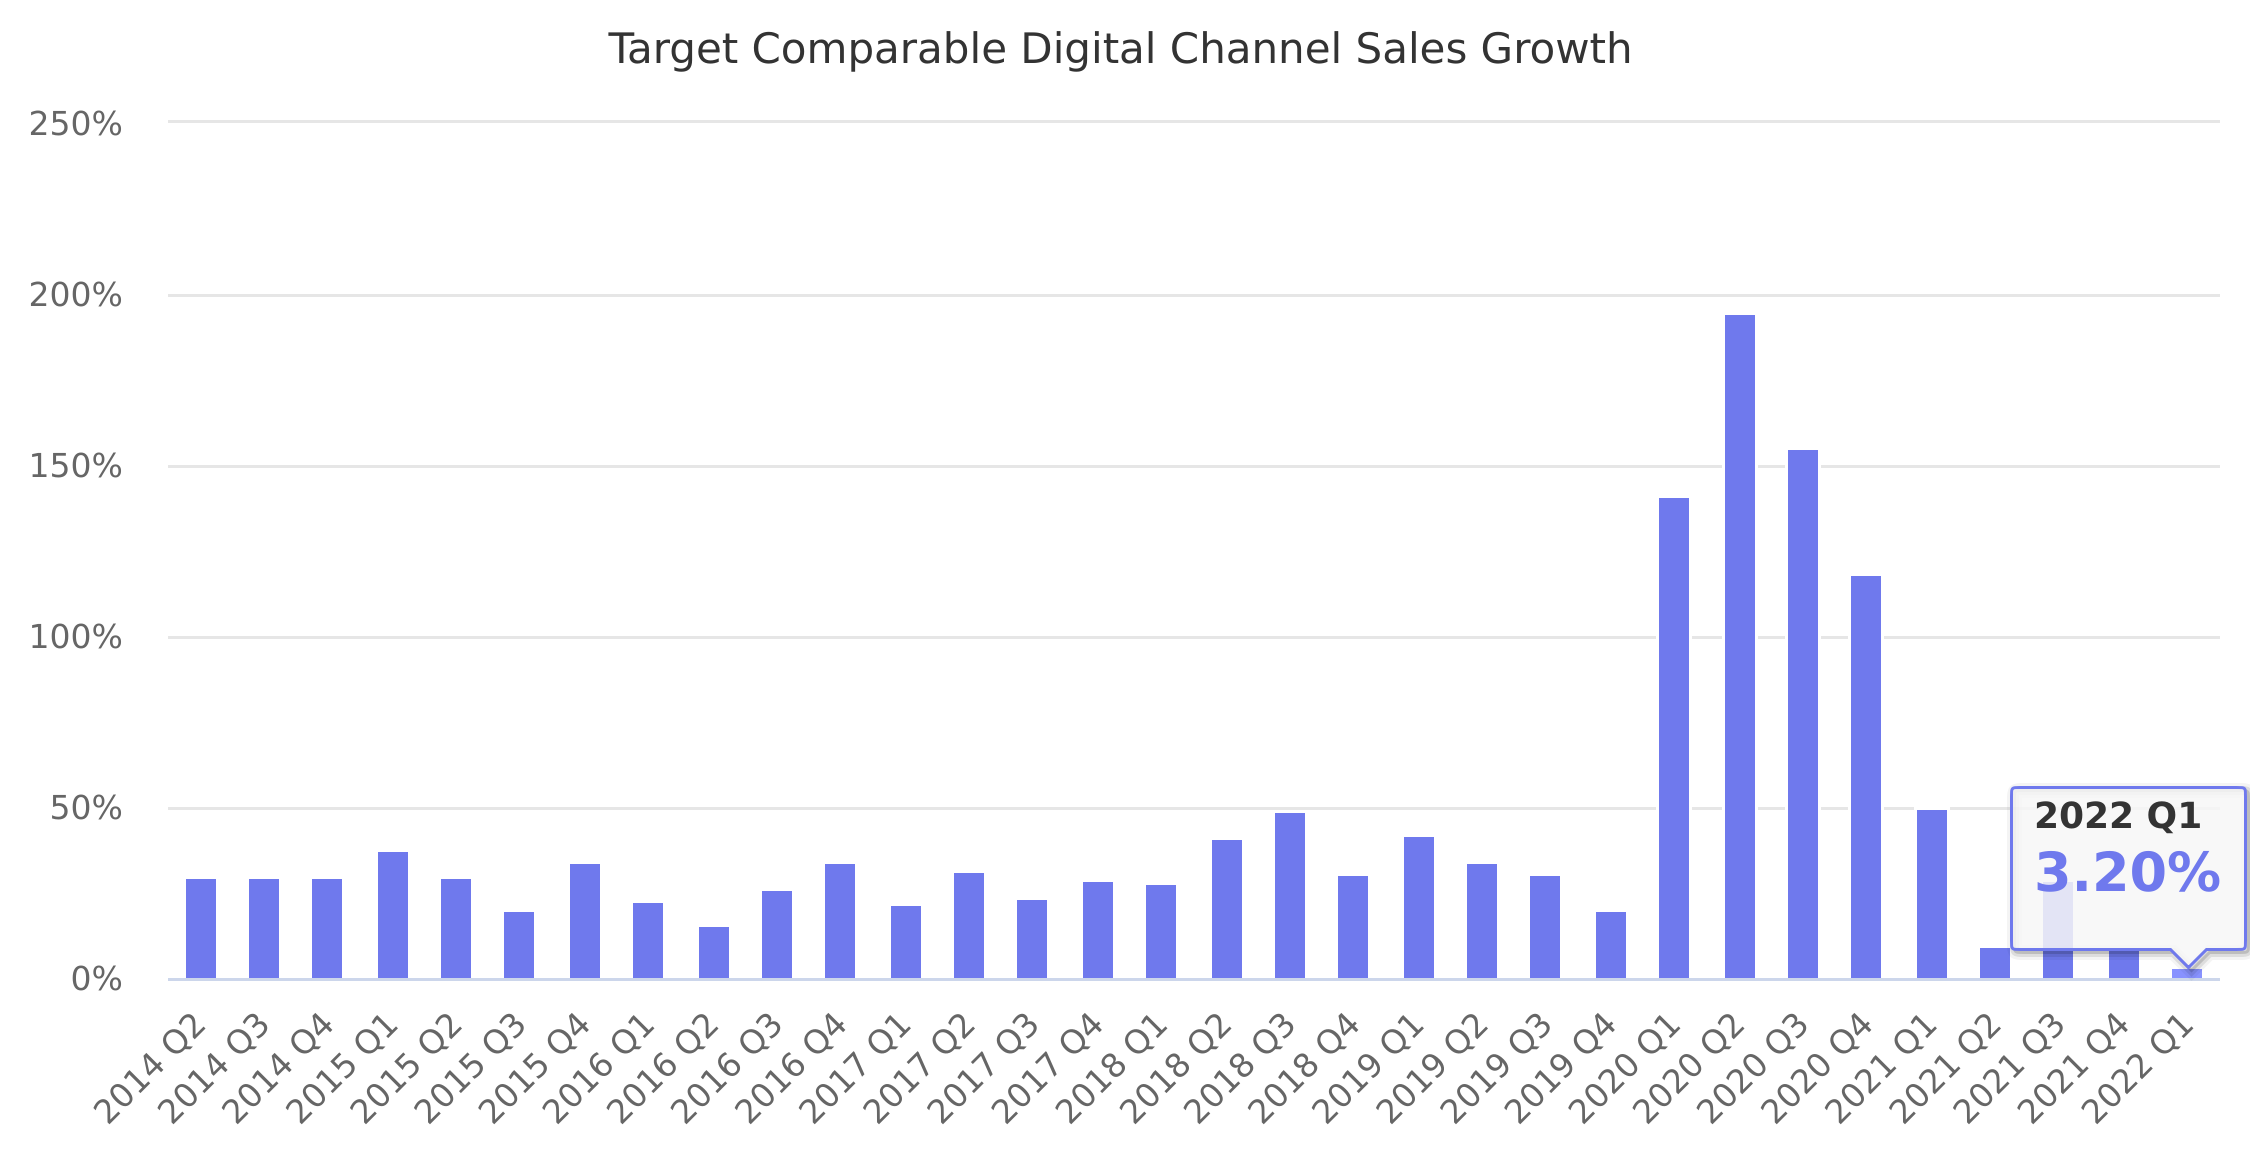 Target Comparable Digital Channel Sales Growth 2014-2020